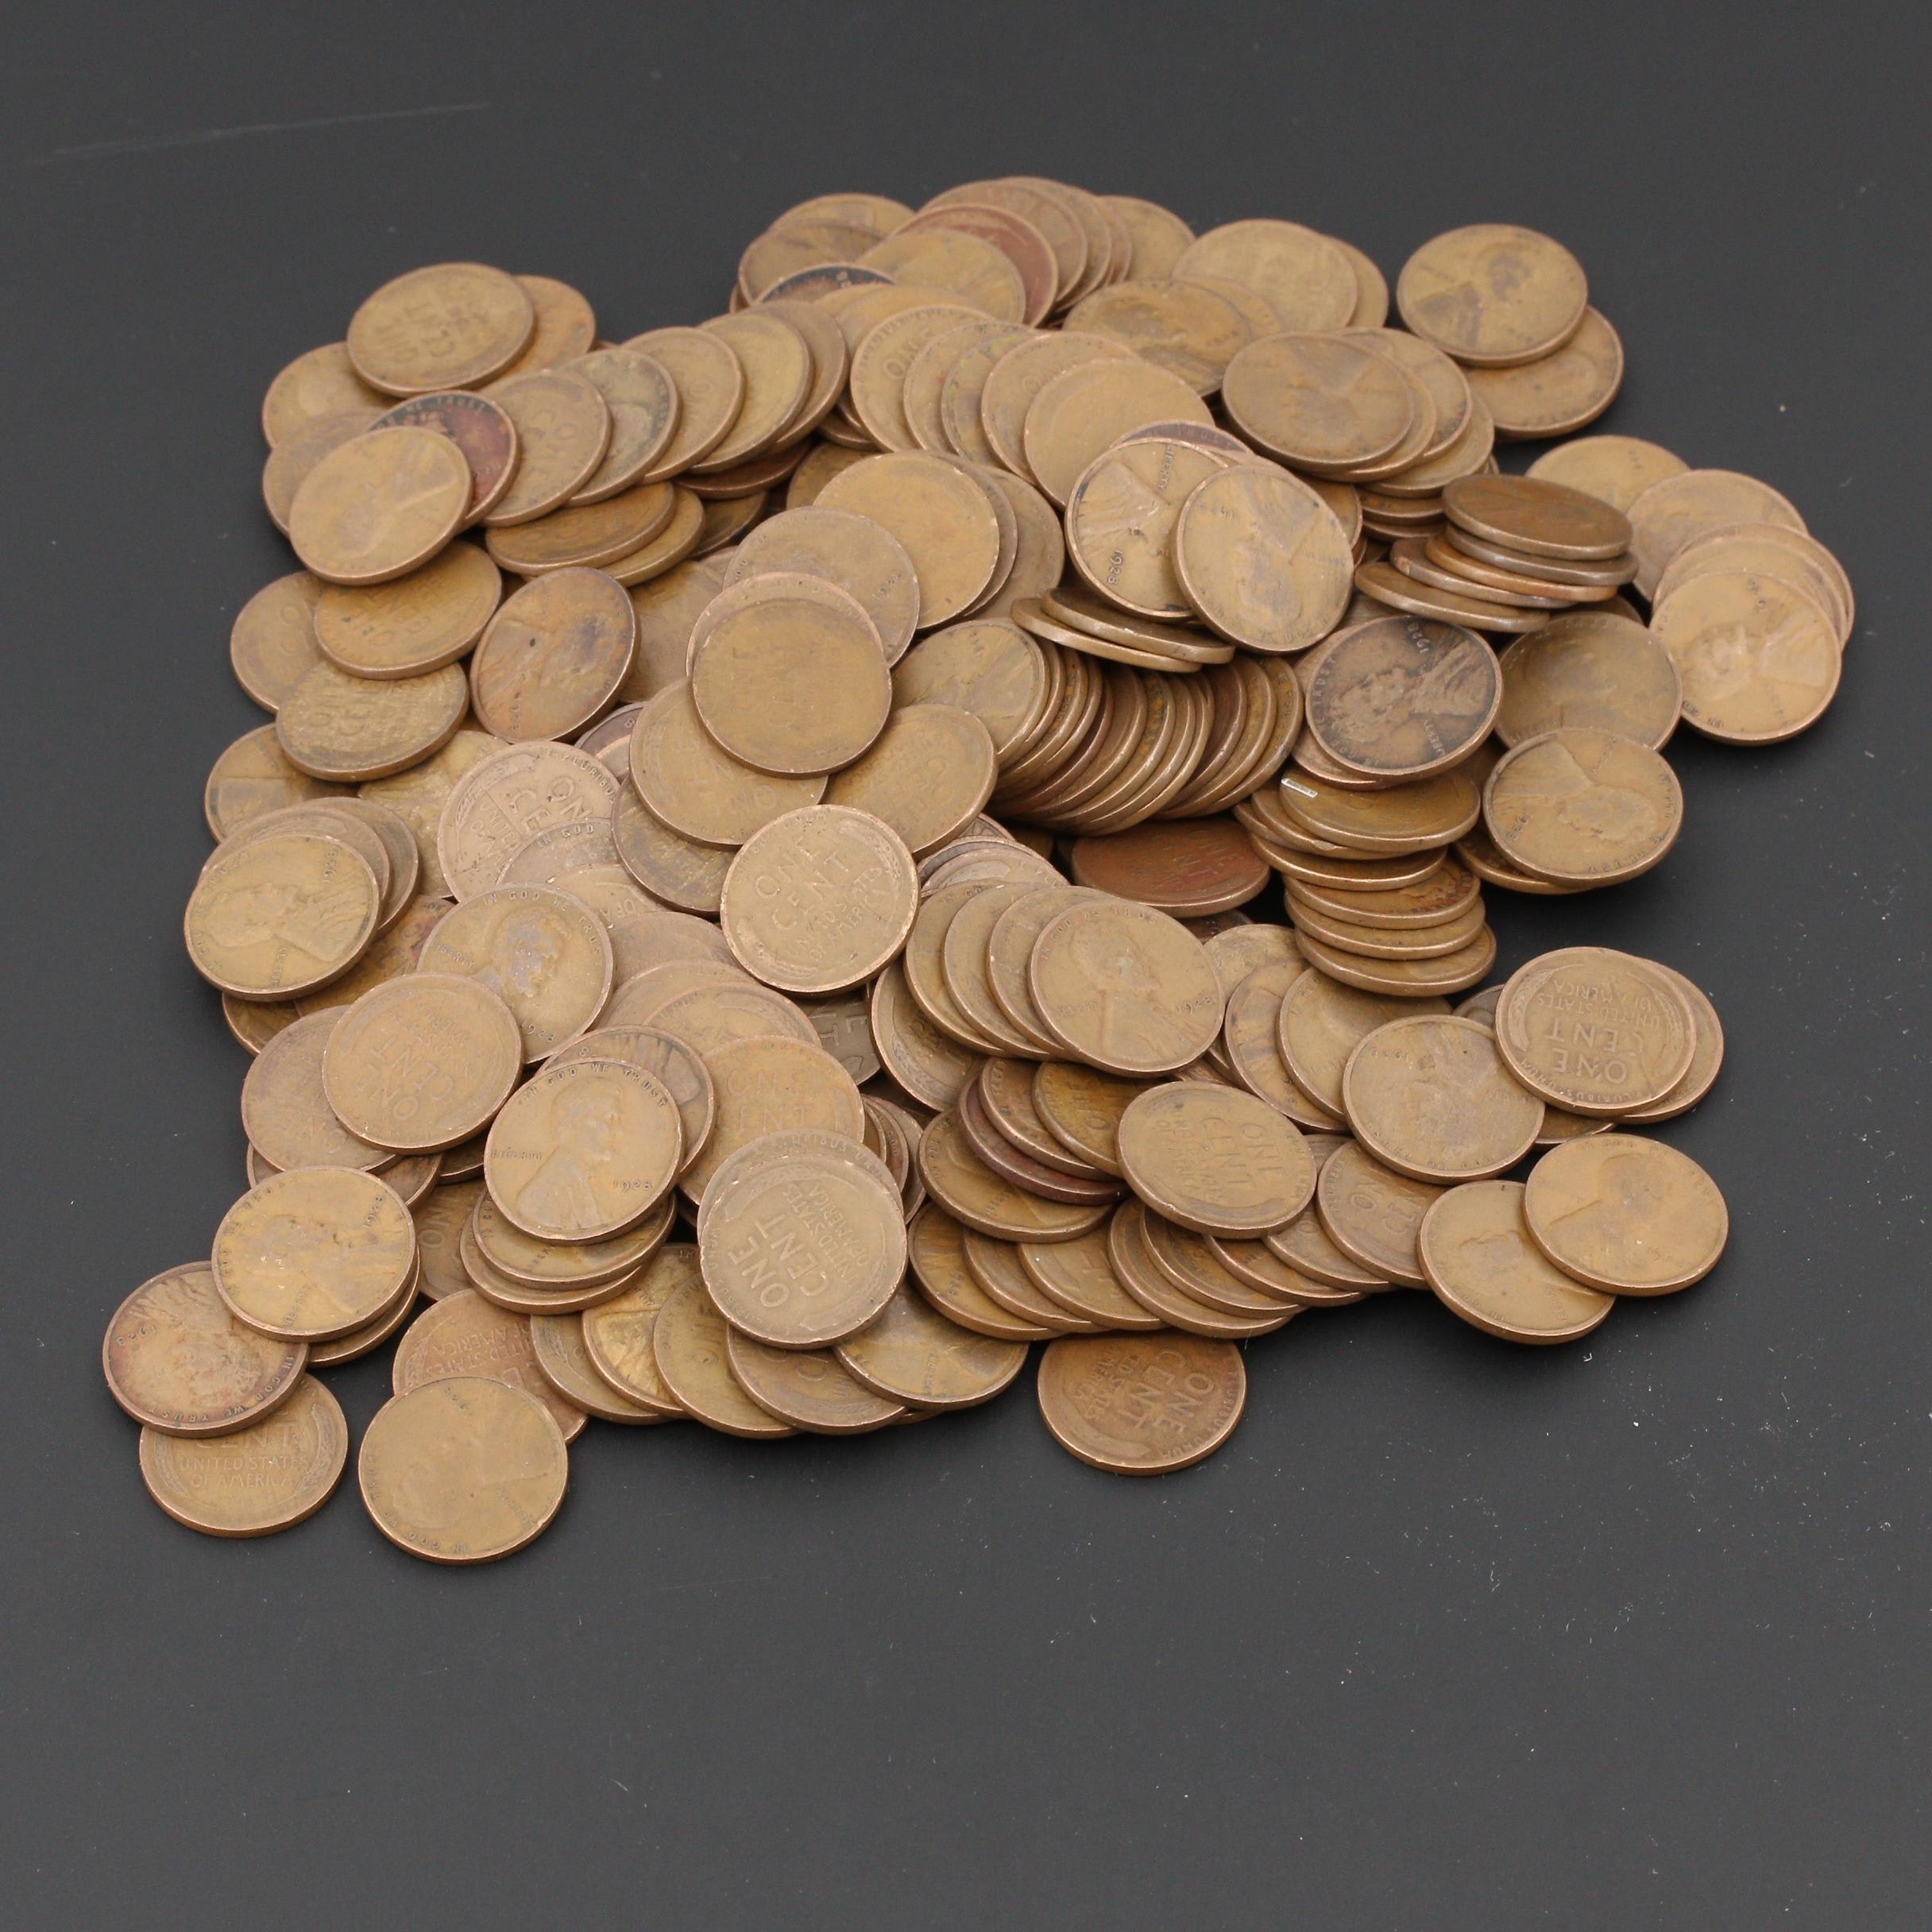 250 Lincoln Wheat Cents From the 1920s